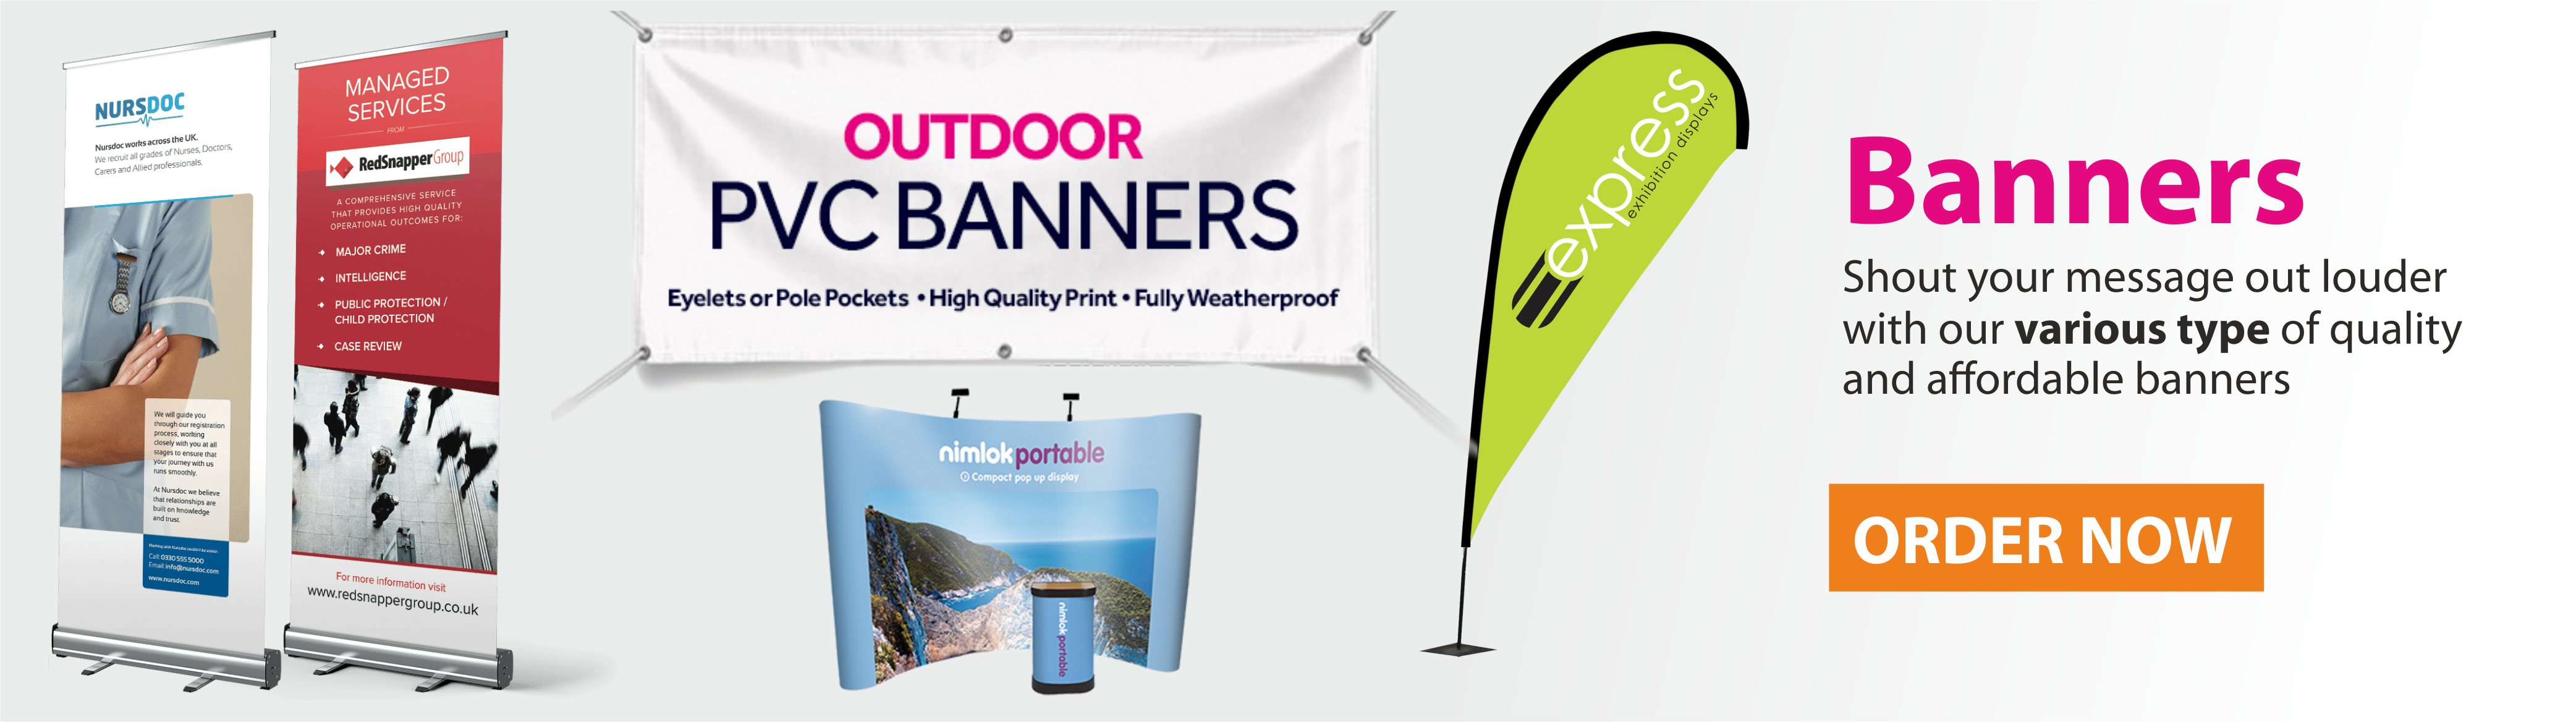 Bannerbanners